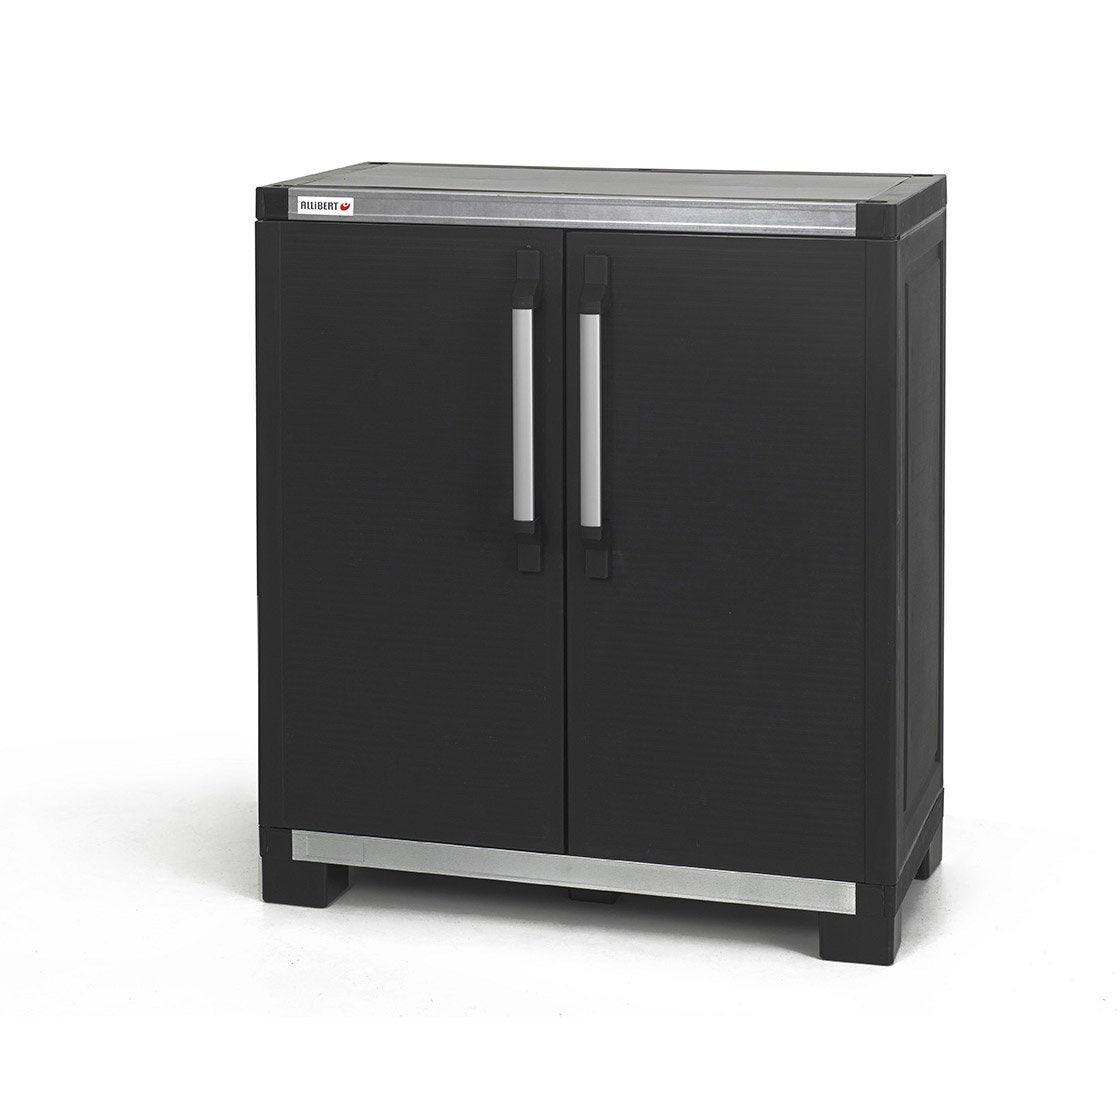 armoire basse r sine 1 tablette allibert xl pro x h. Black Bedroom Furniture Sets. Home Design Ideas